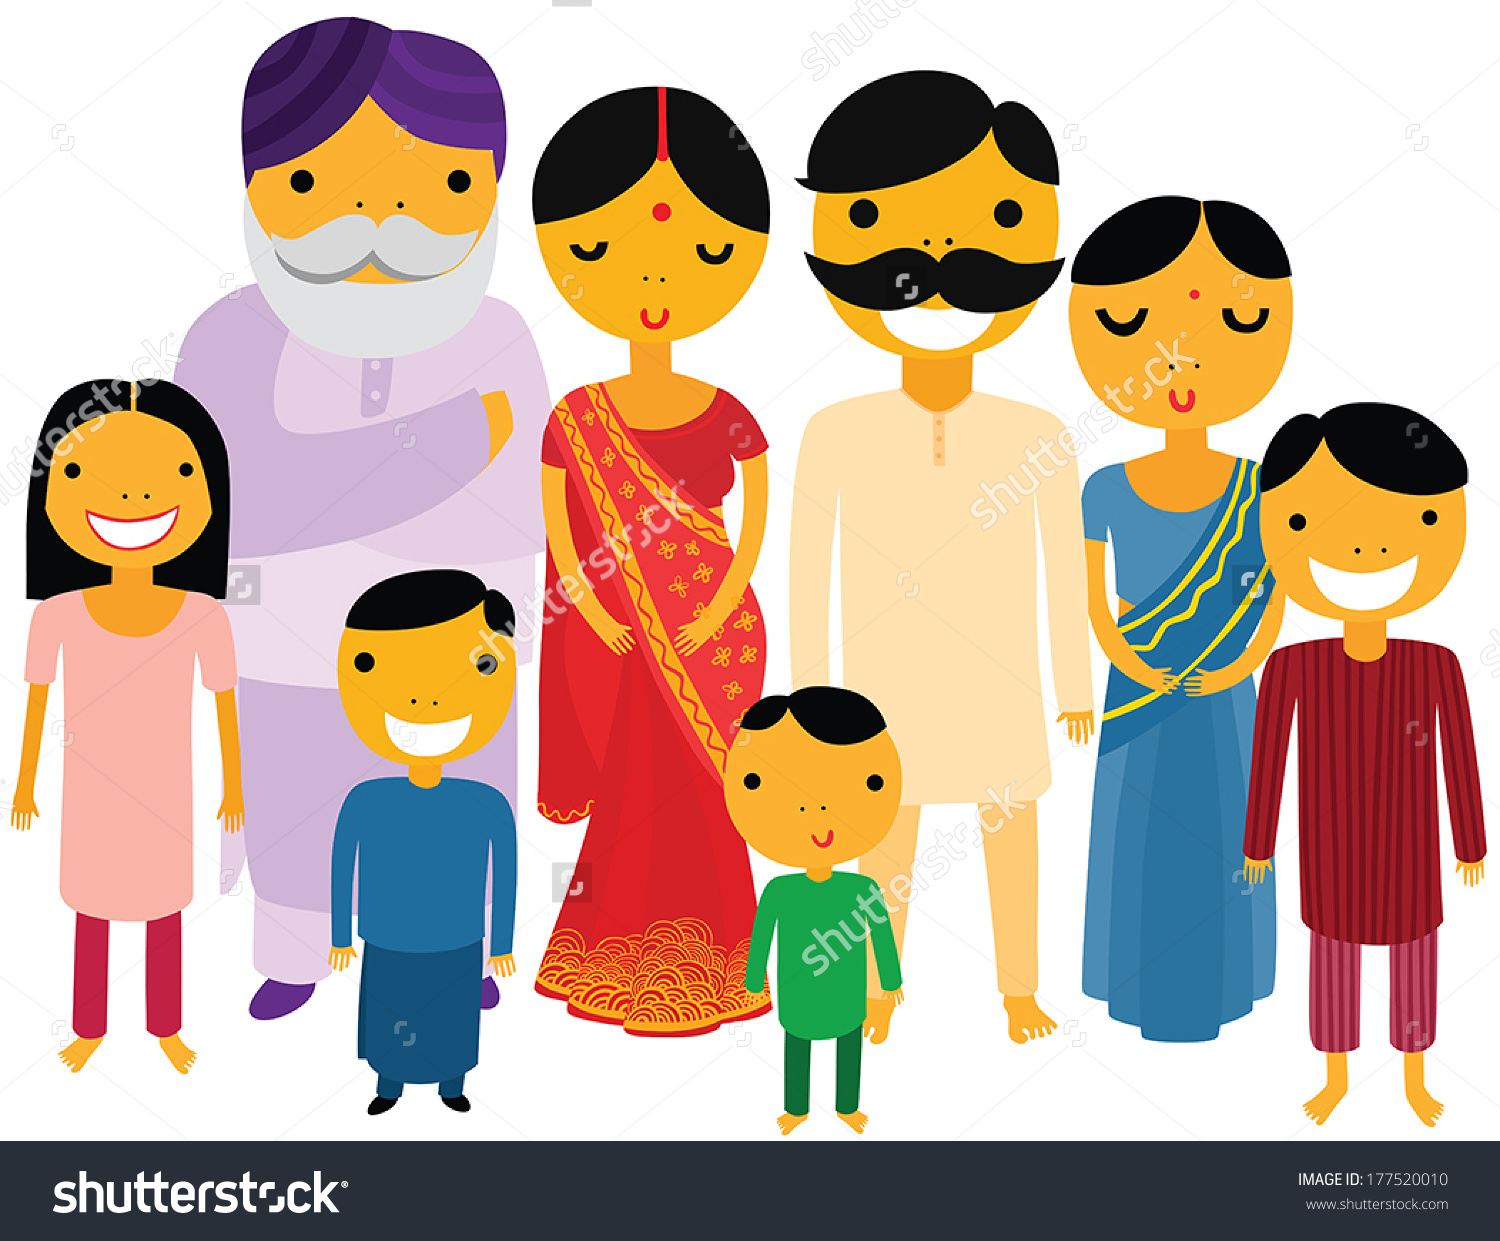 Free Asian Person Cliparts, Download Free Clip Art, Free.